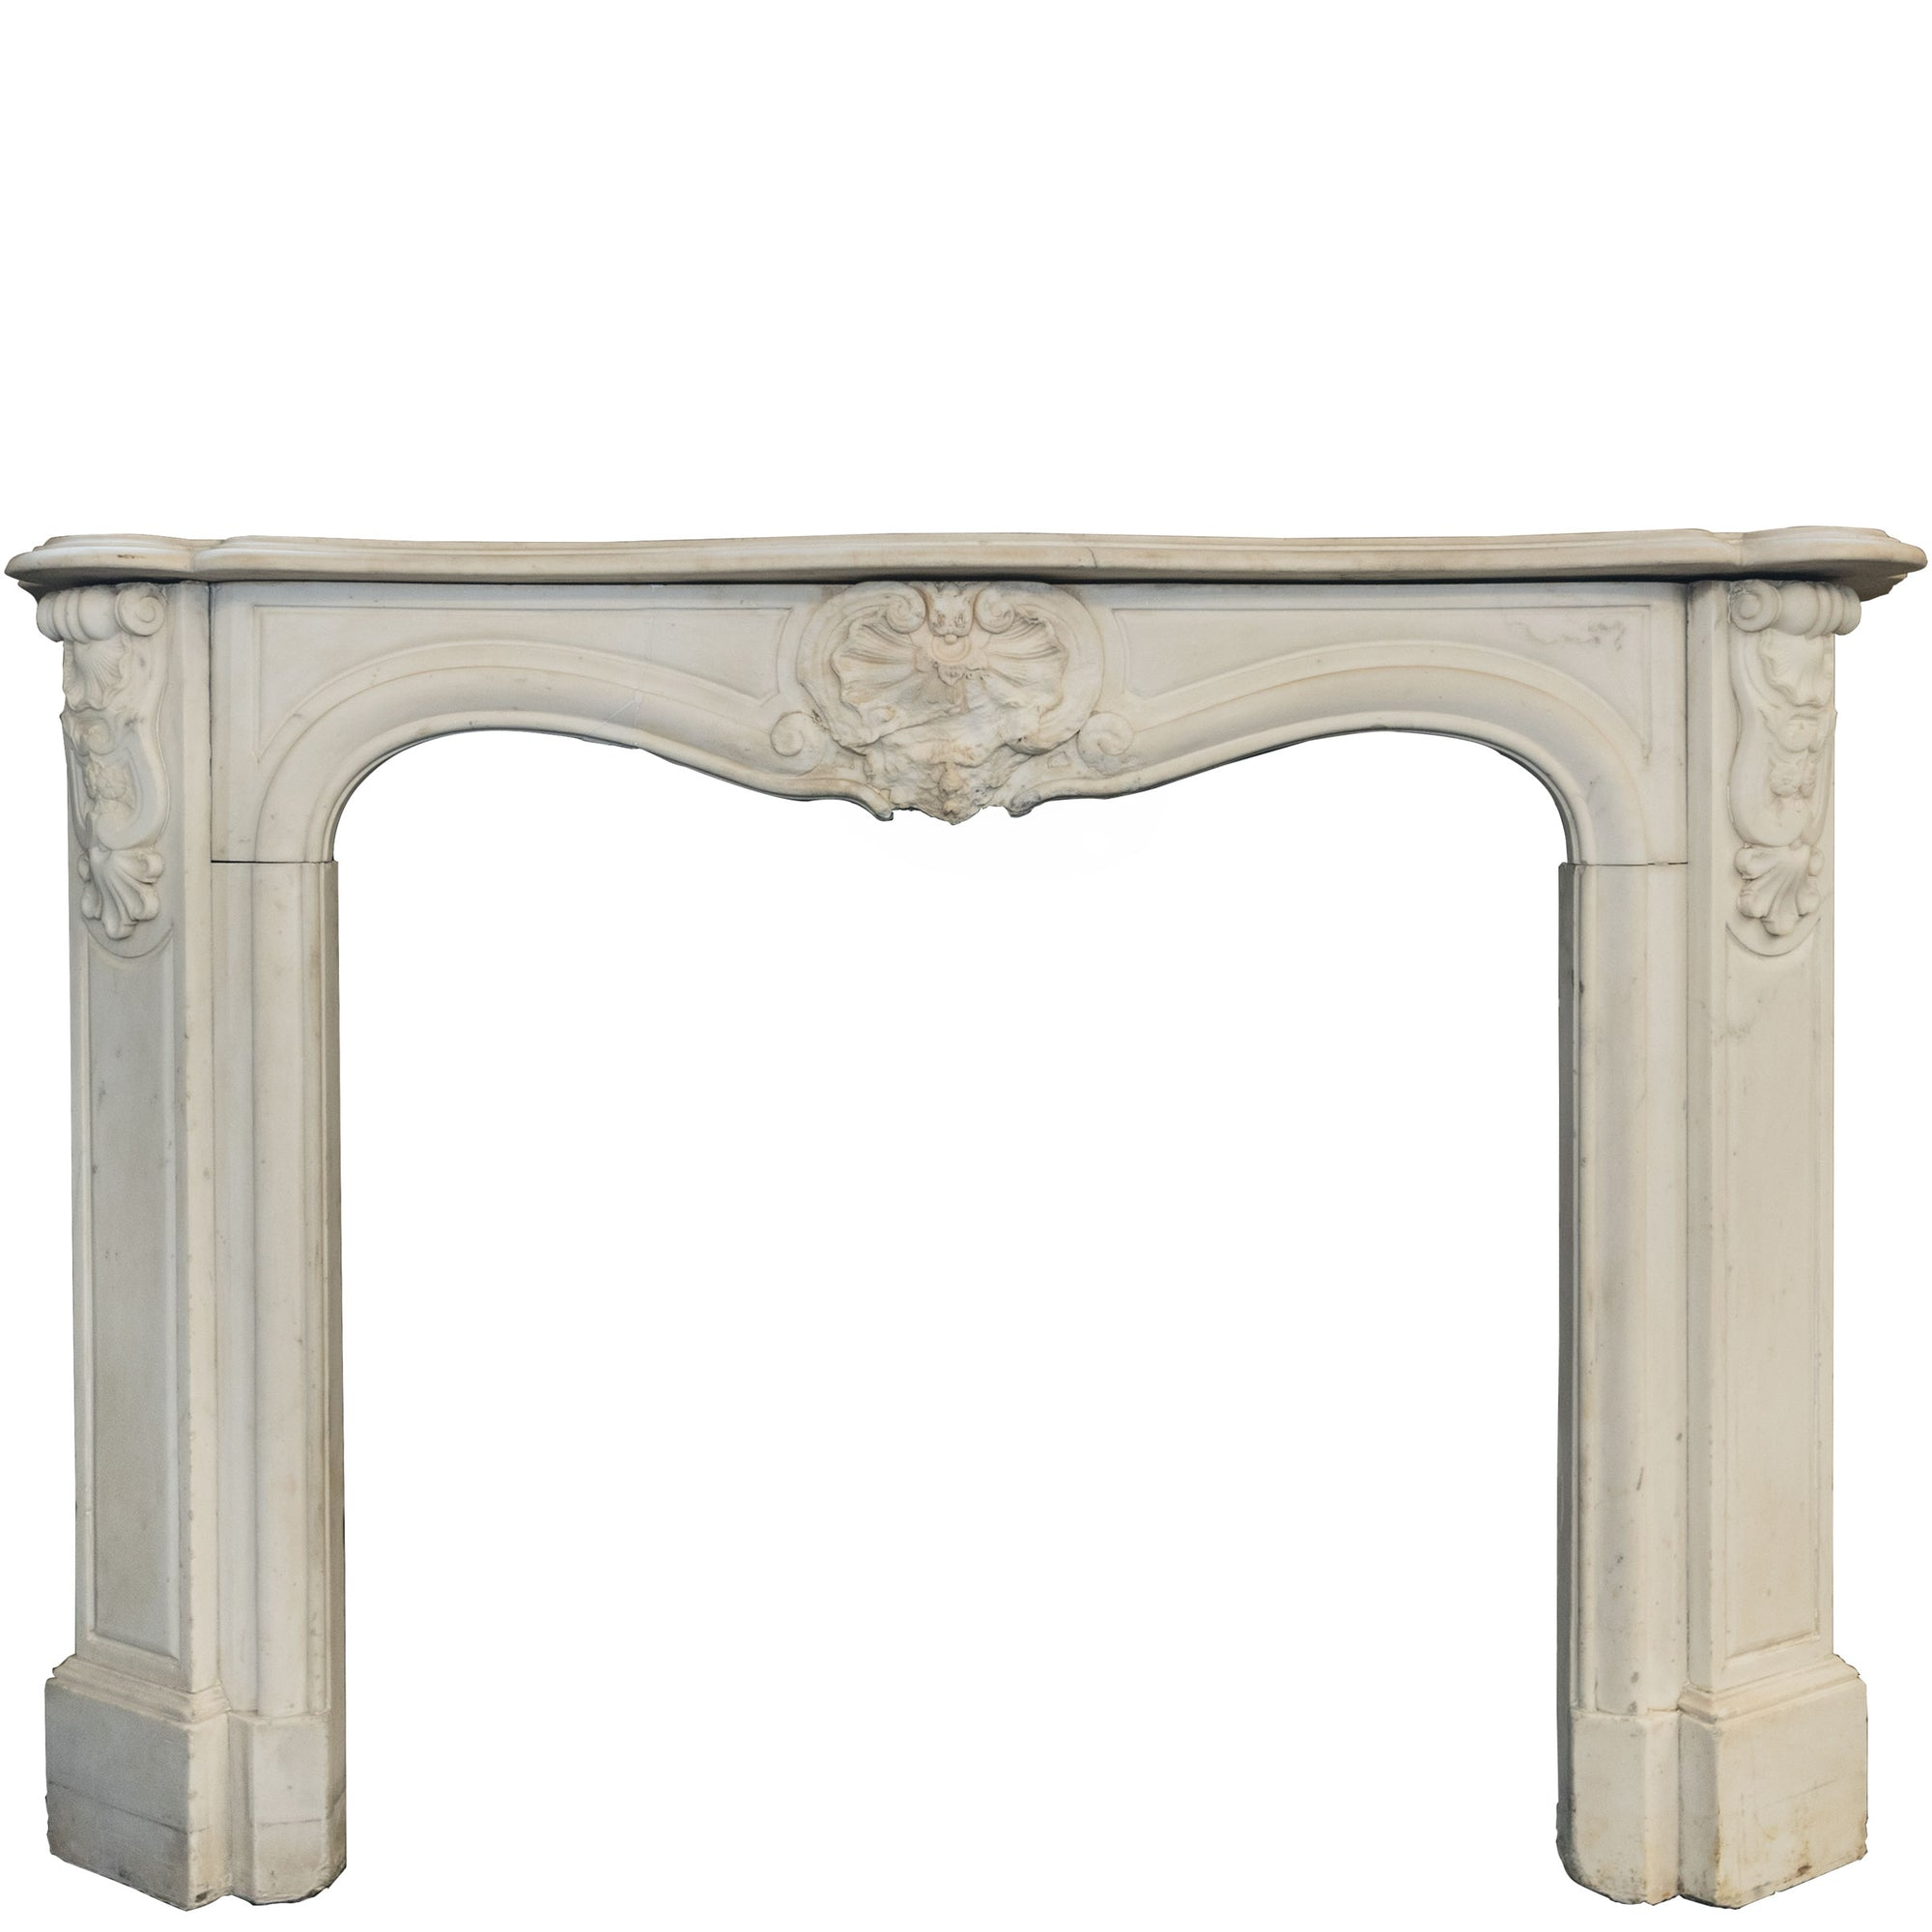 Antique Louis Style Carrara Marble Fireplace Surround